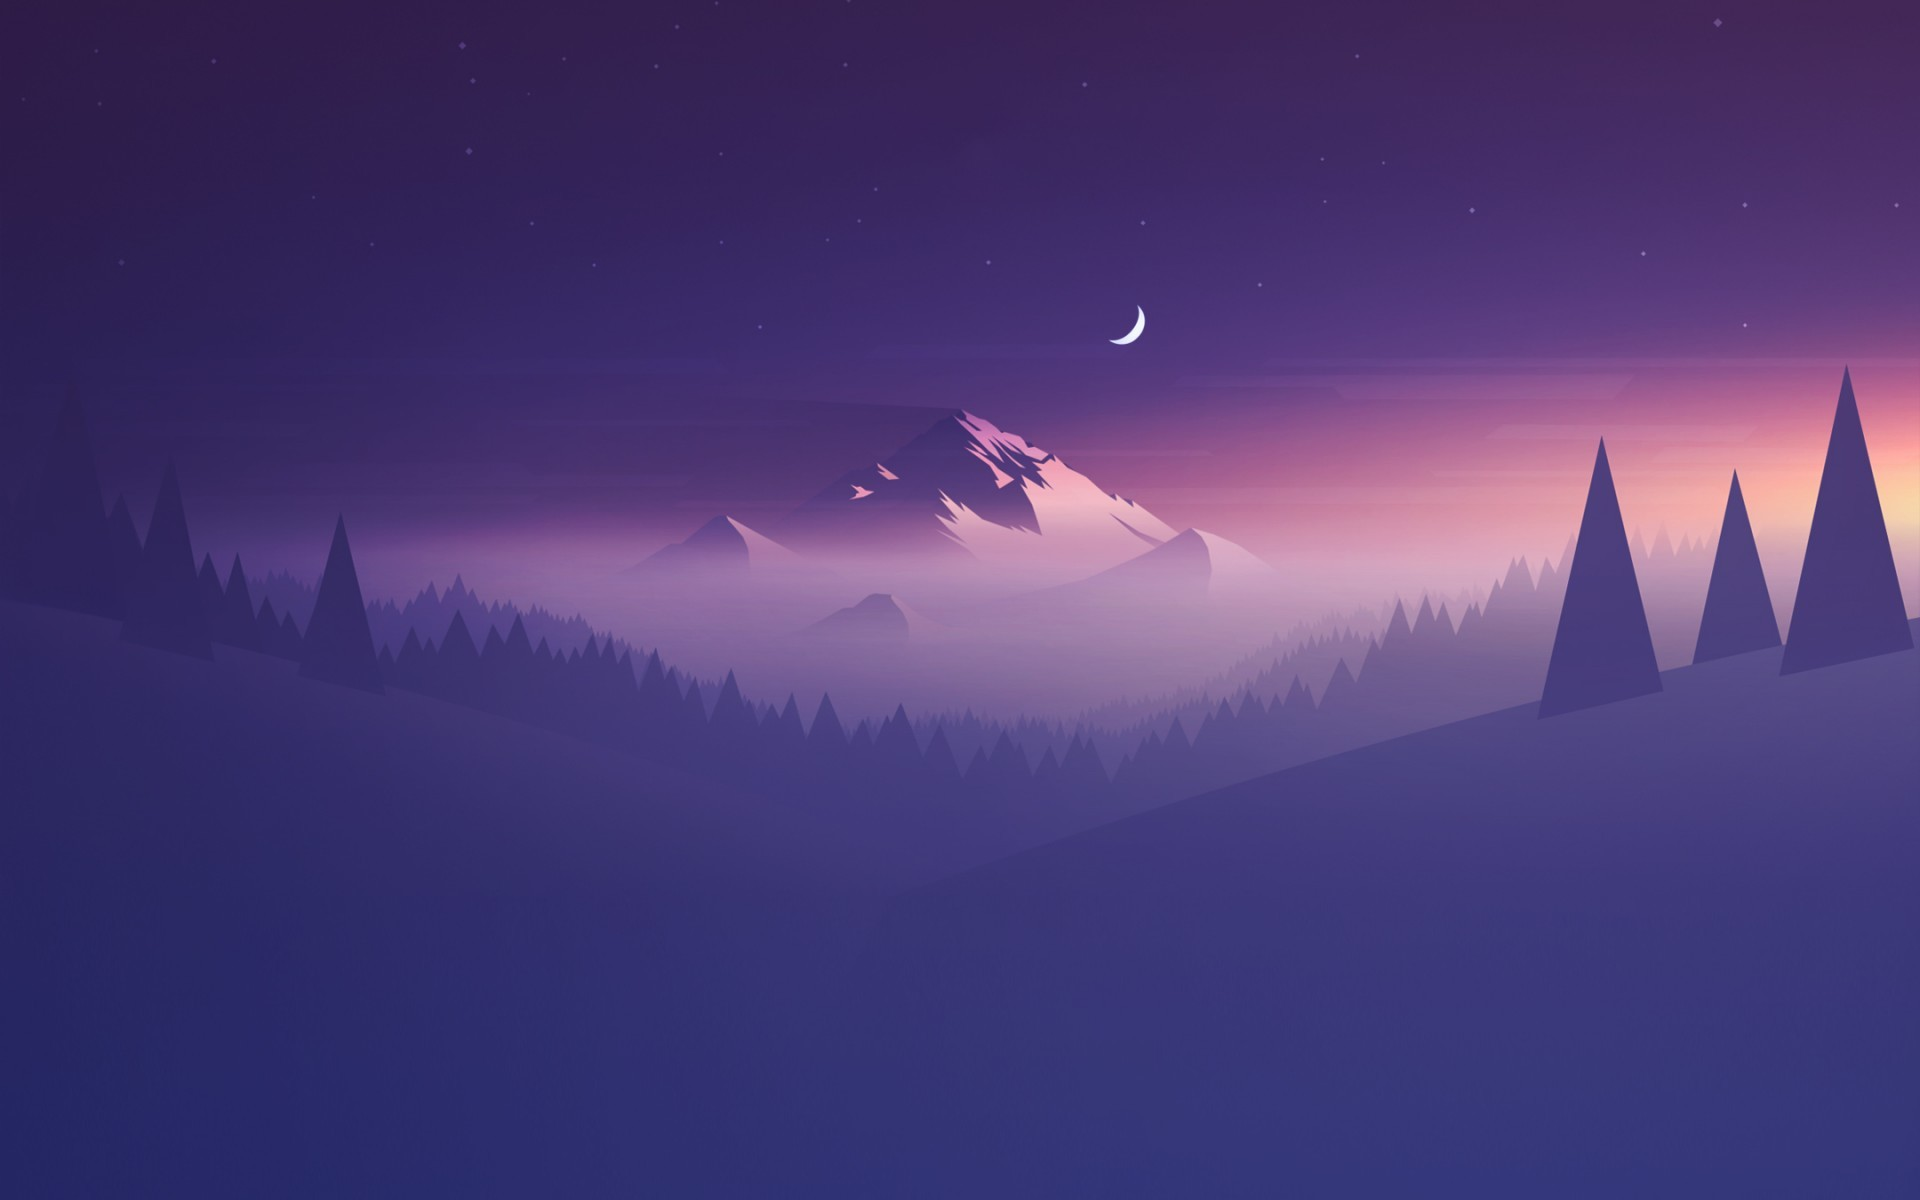 1920x1200 #artwork, #trees, #stars, #mountains, #landscape, #Moon, wallpaper